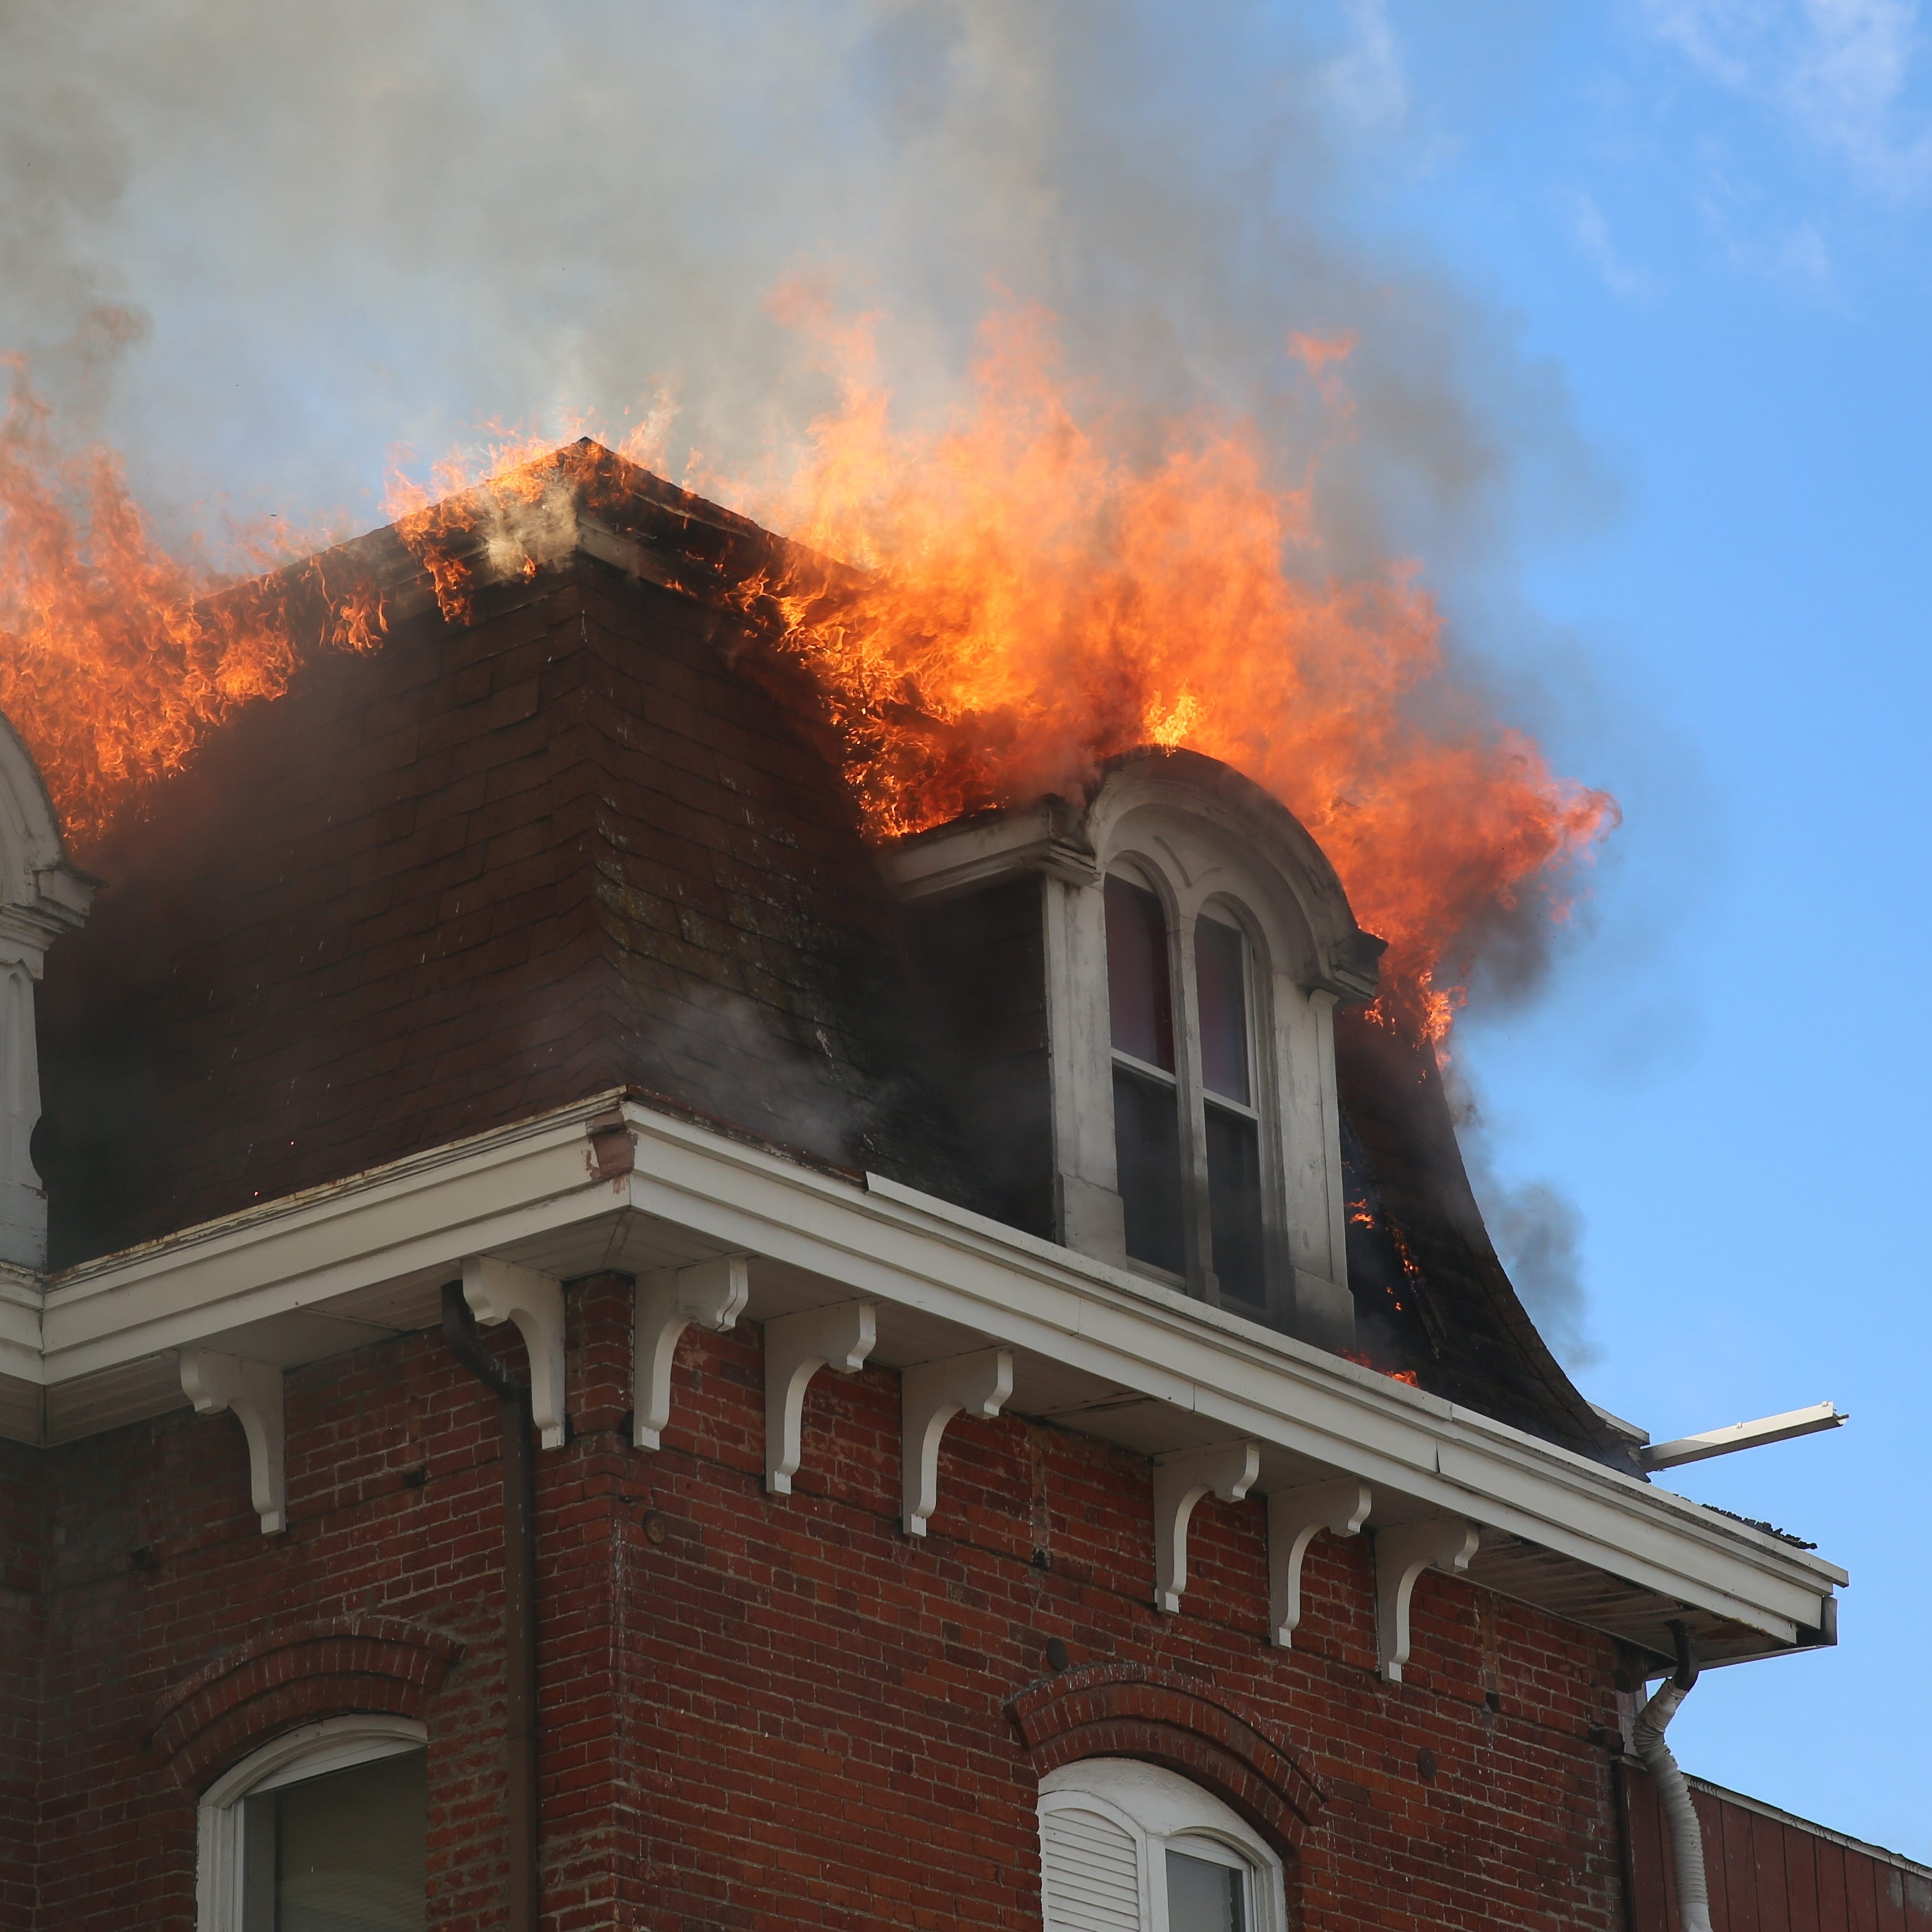 Firefighters respond to a fire on Smith Street in the City of Poughkeepsie on Friday.